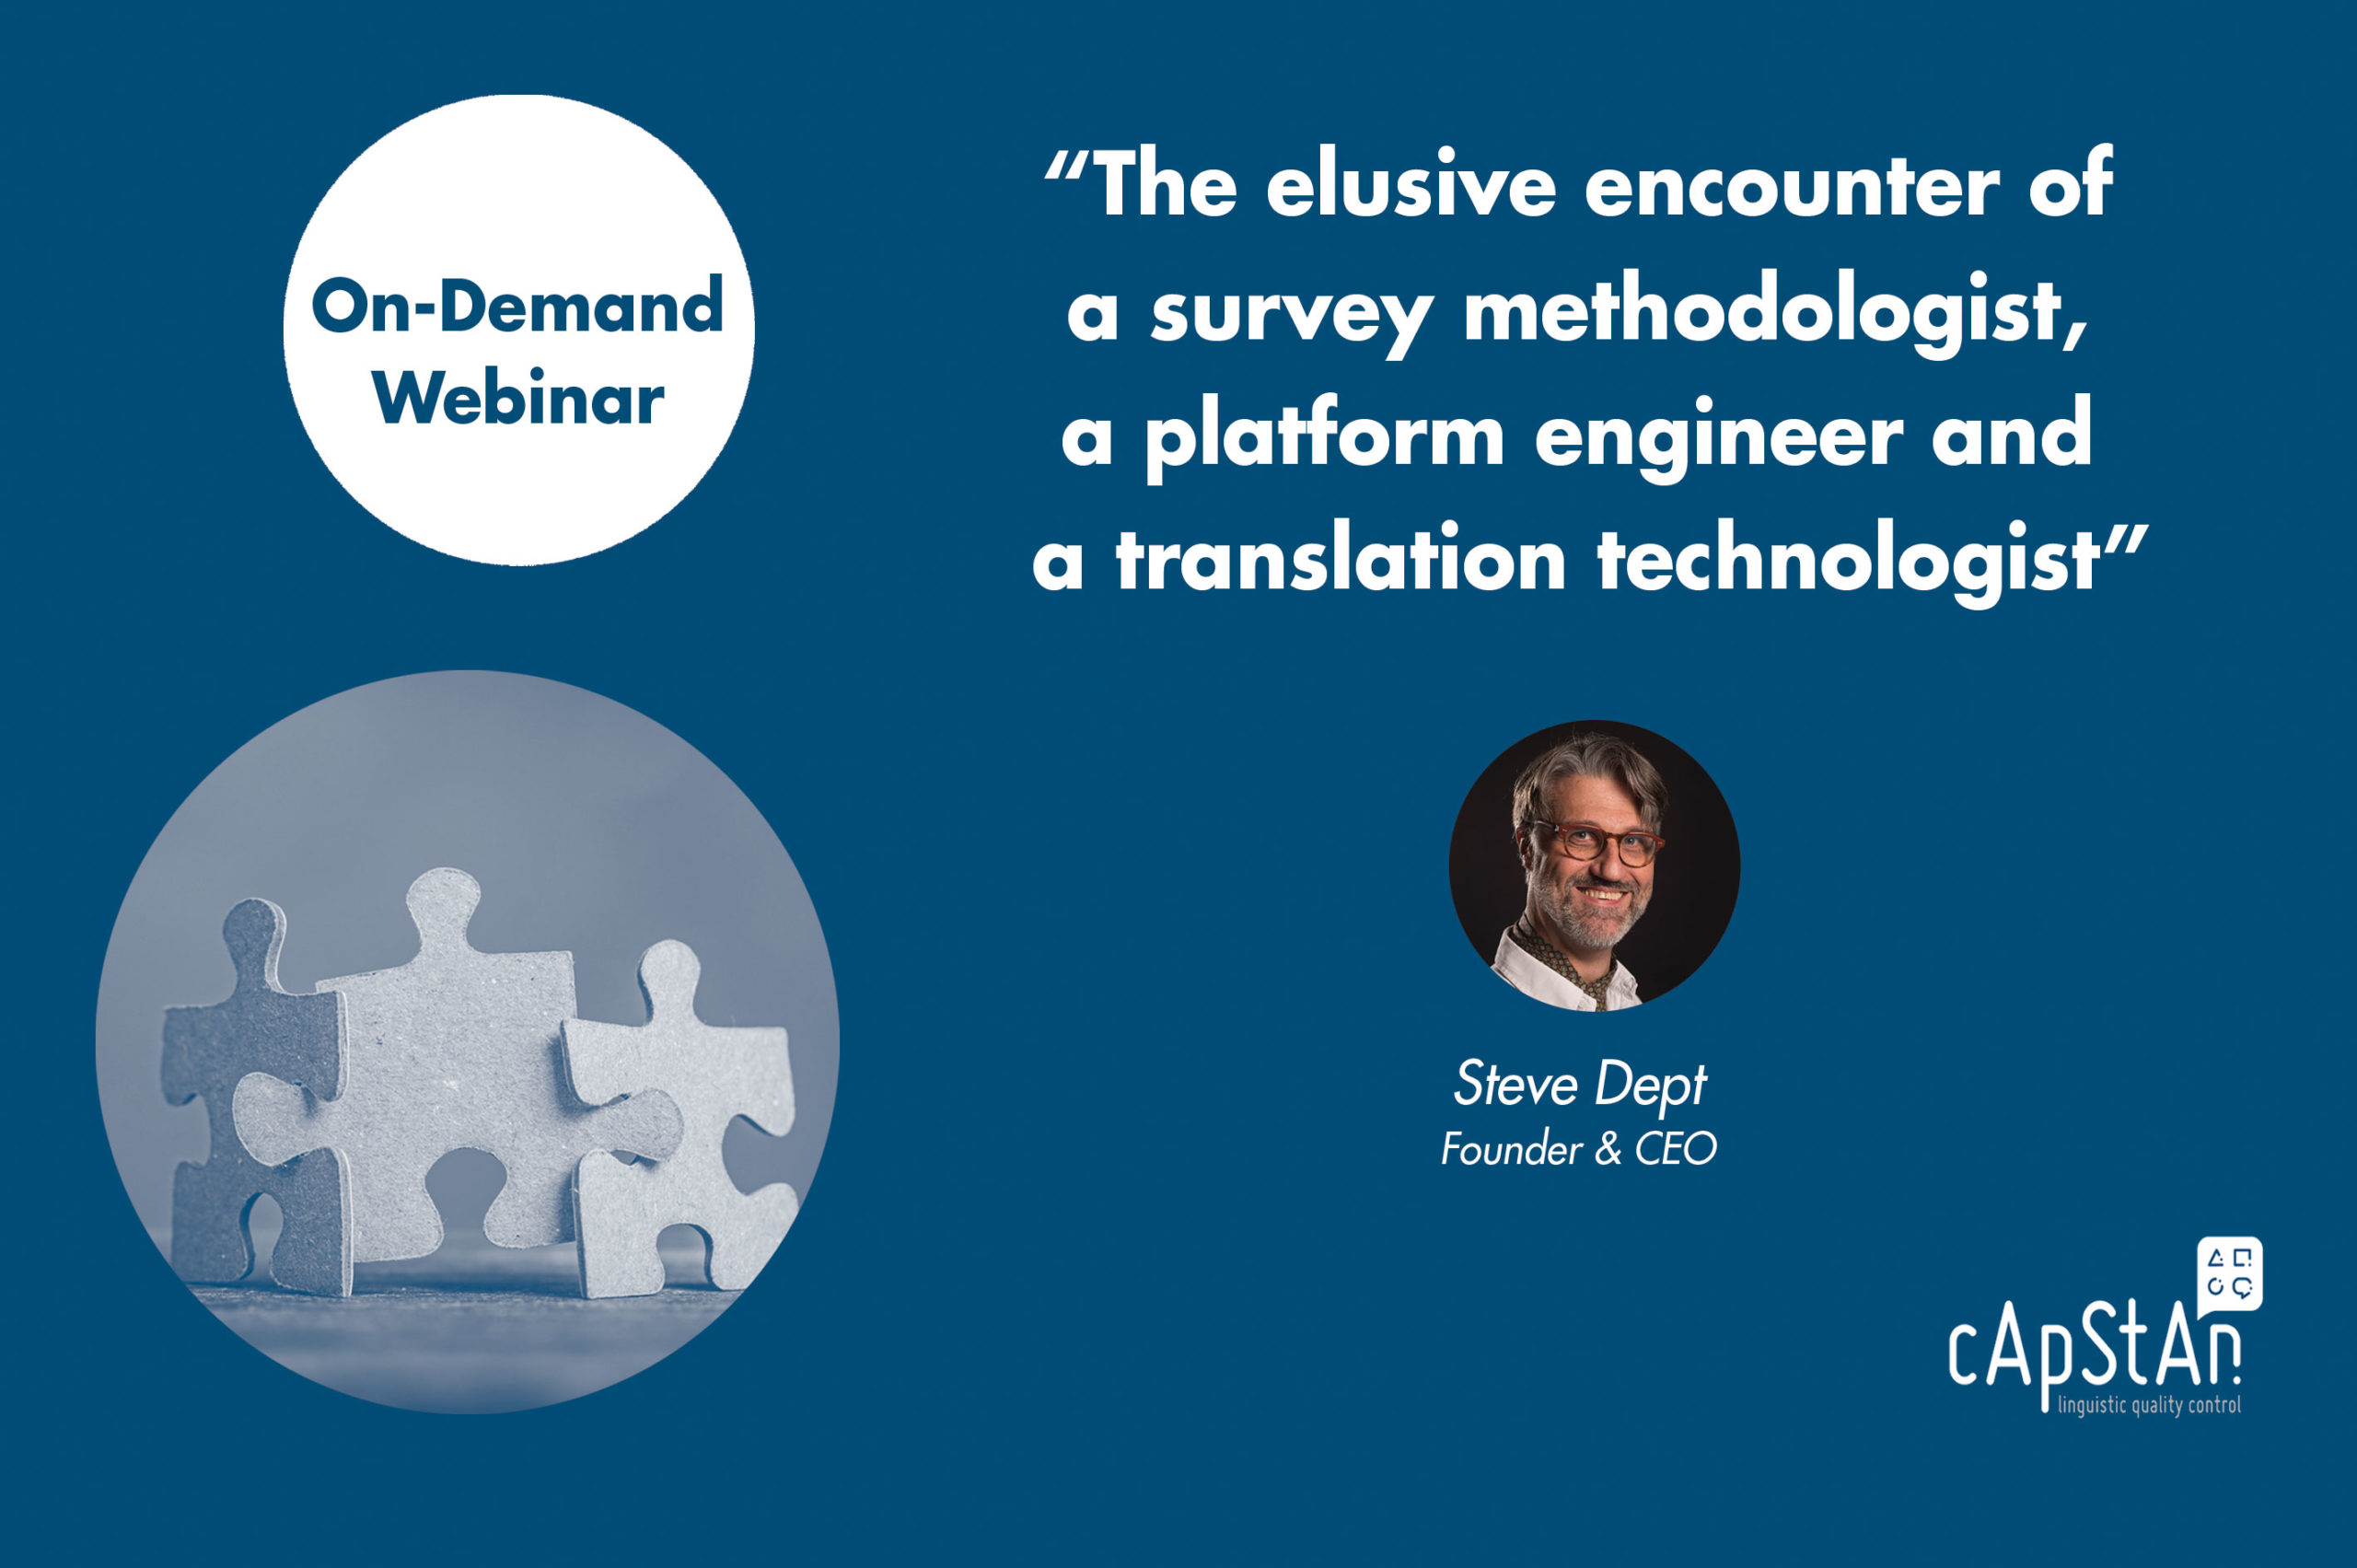 On-Demand Webinar | The elusive encounter of a survey methodologist, a platform engineer and a translation technologist